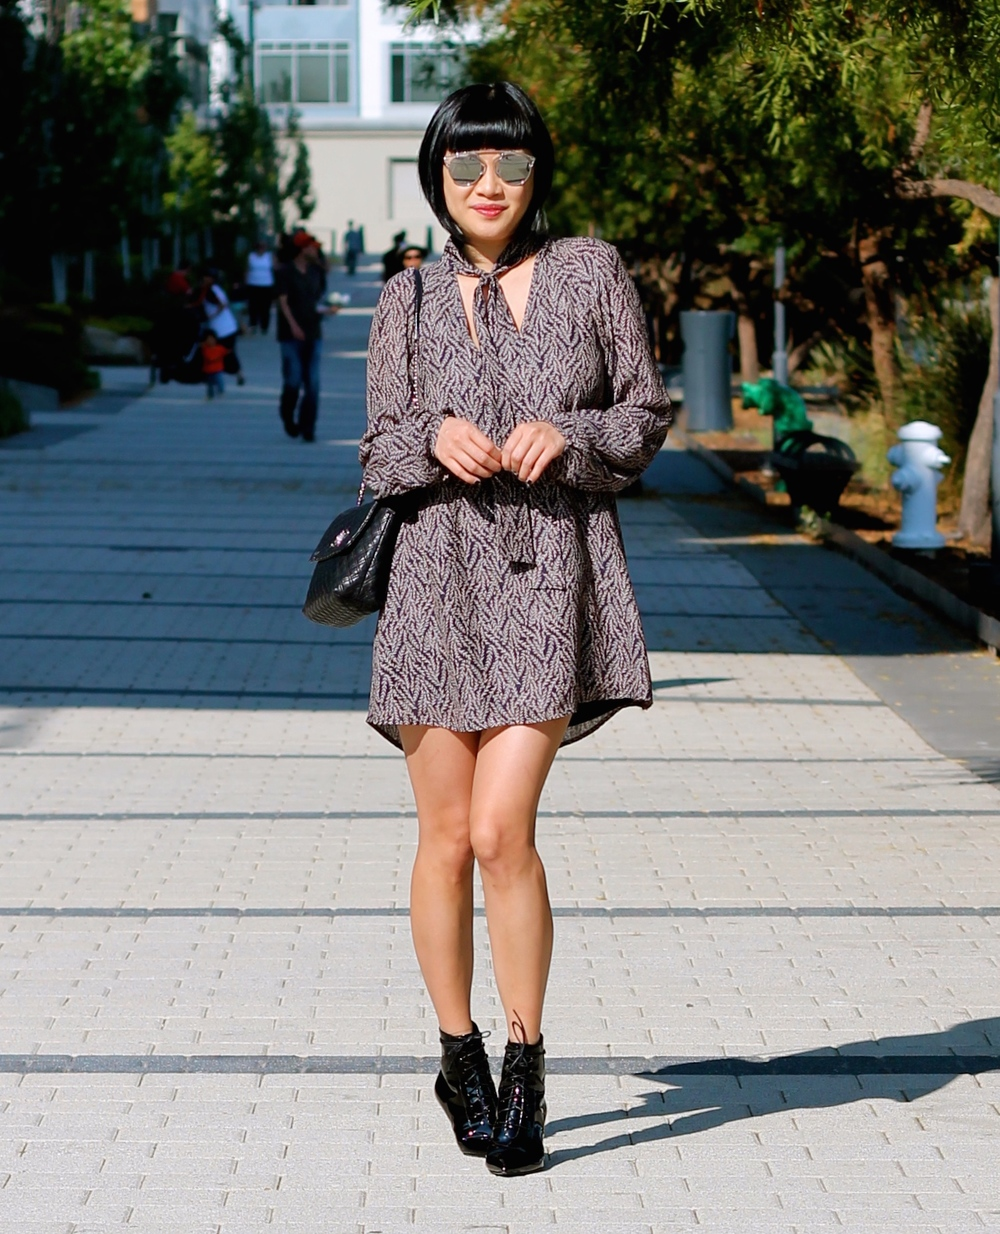 Aritzia dress, Saint Laurent boots, Marc Jacobs bag, Dior sunglasses